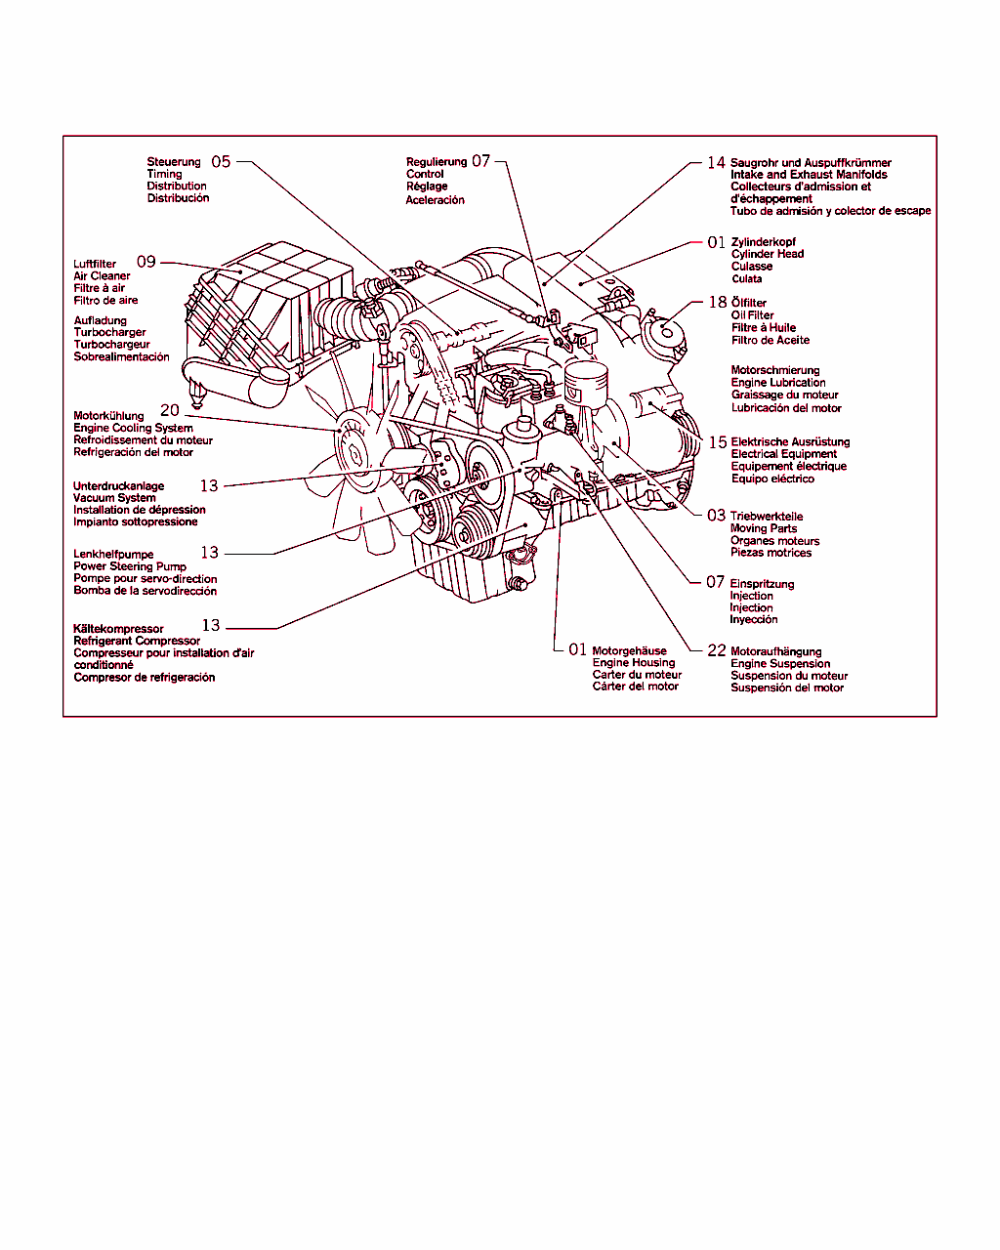 medium resolution of group engine housing 005 design group orientation table